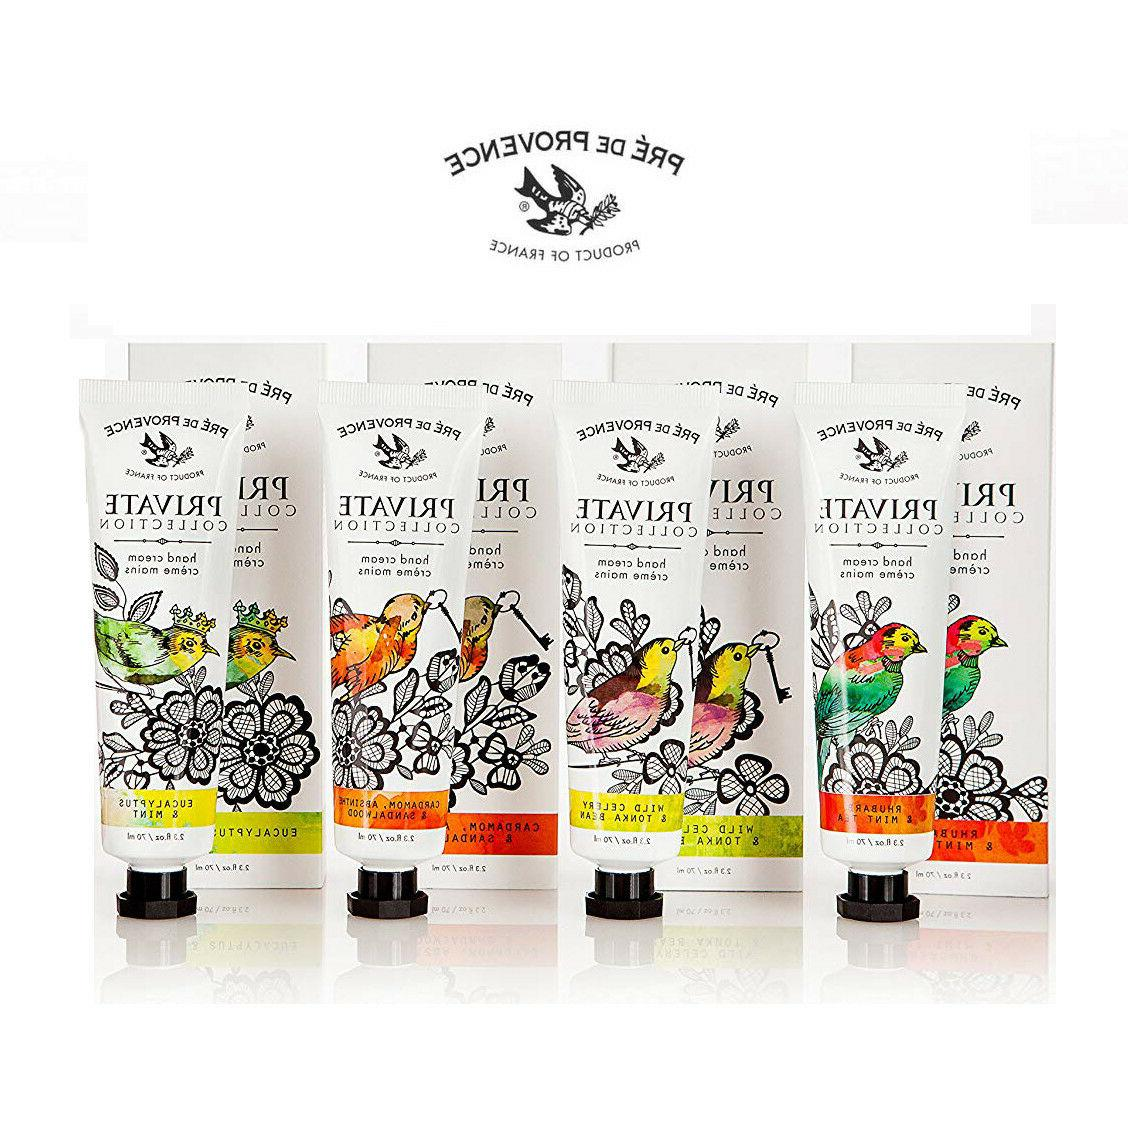 hand creams 70ml inspired by earthly pleasures